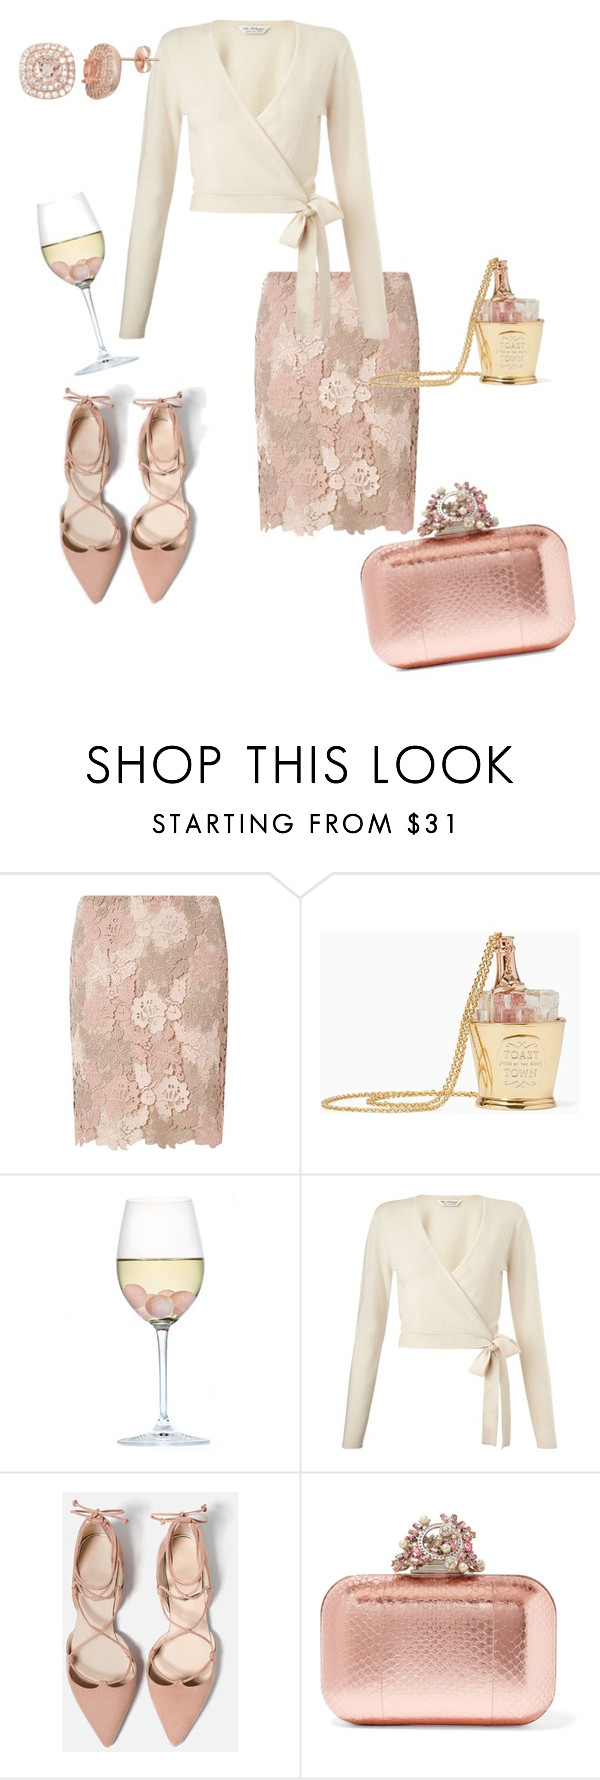 """""""Pretty rose"""" by aconner813 on Polyvore featuring Dorothy Perkins, Kate Spade, RabLabs, Miss Selfridge and Jimmy Choo"""